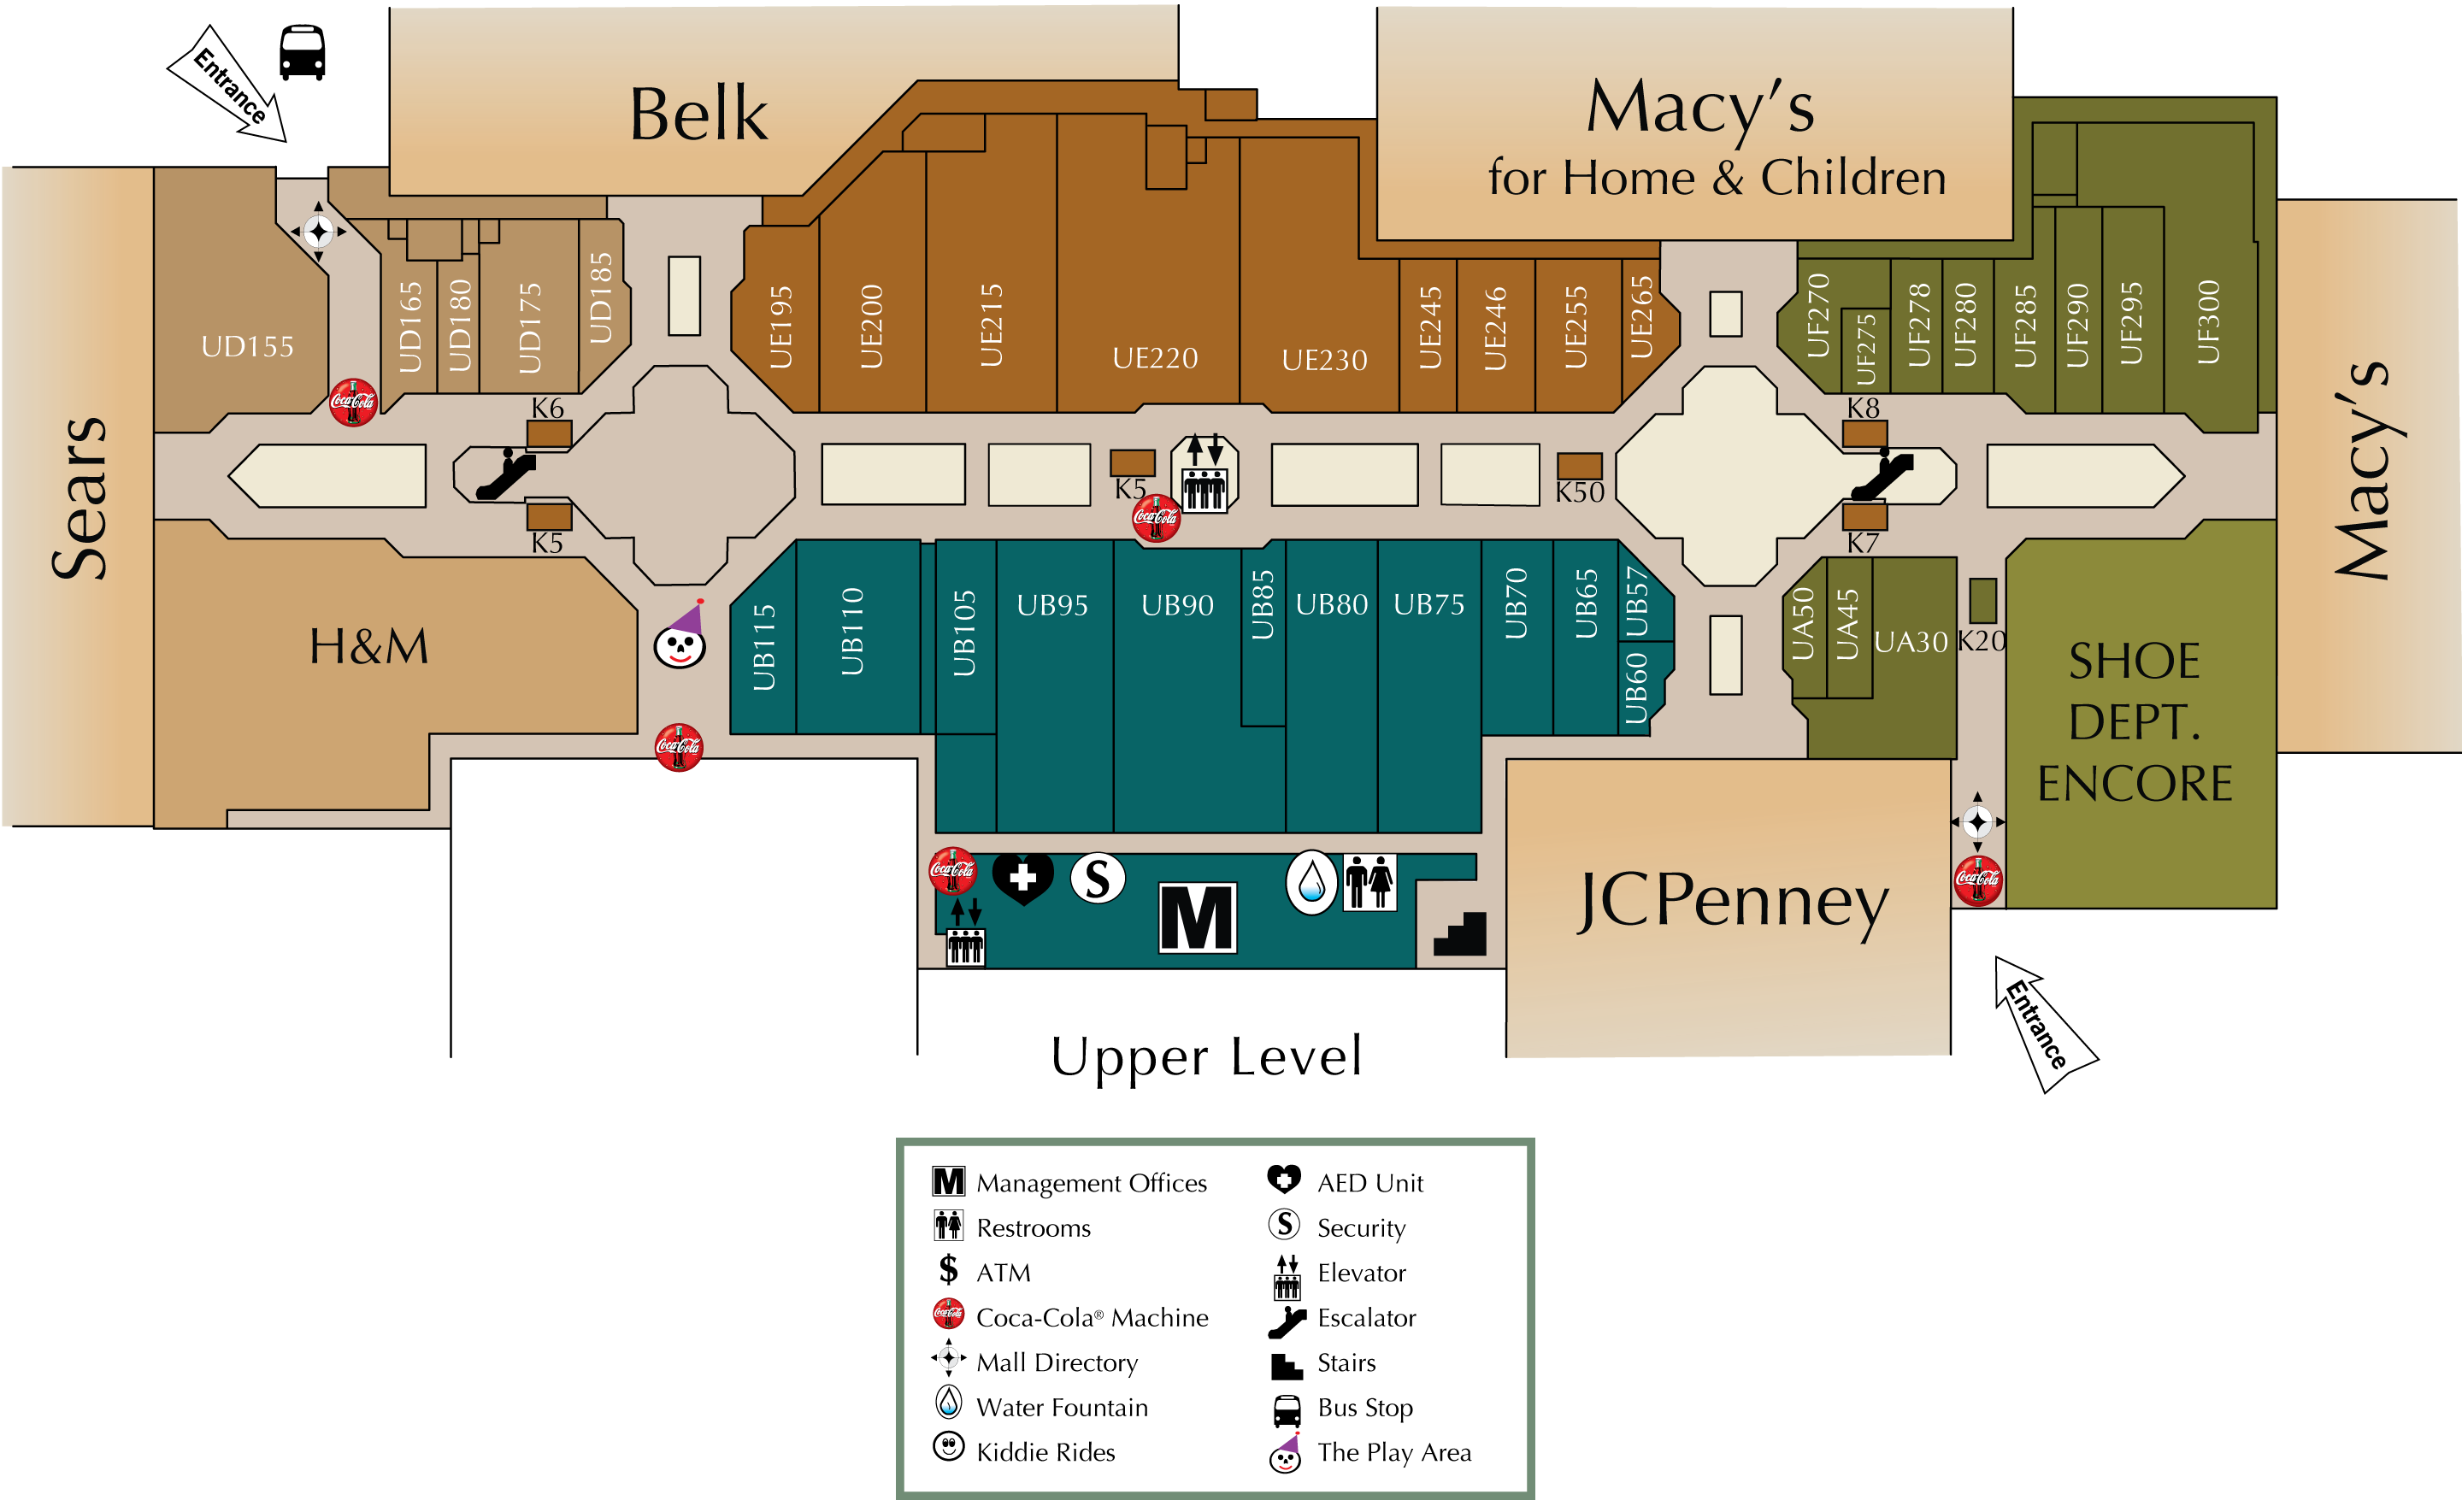 Mall directory valley view mall for Fashion valley jewelry stores